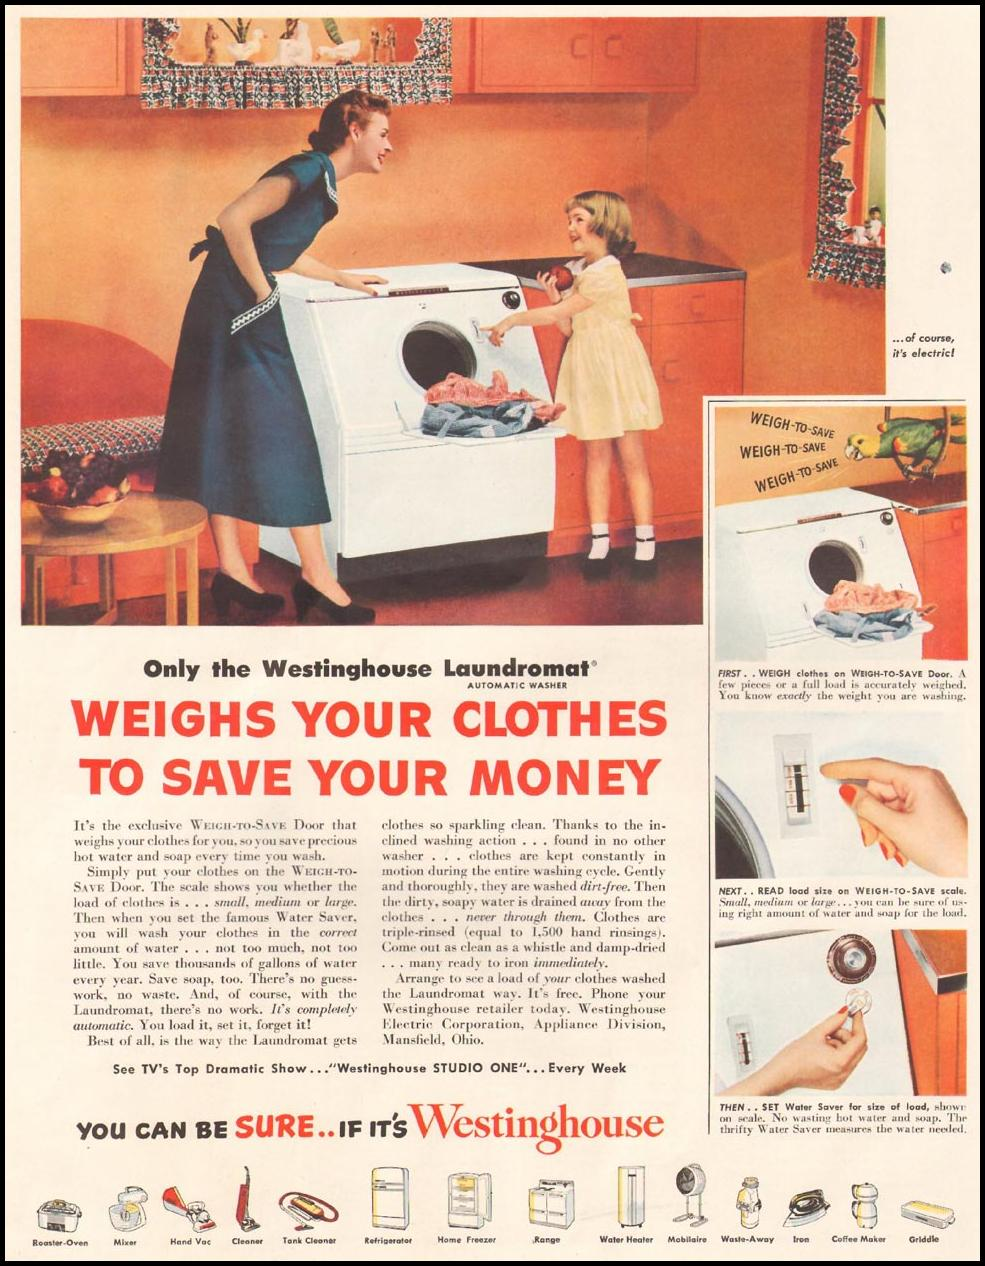 WESTINGHOUSE LAUNDROMAT WASHING MACHINE